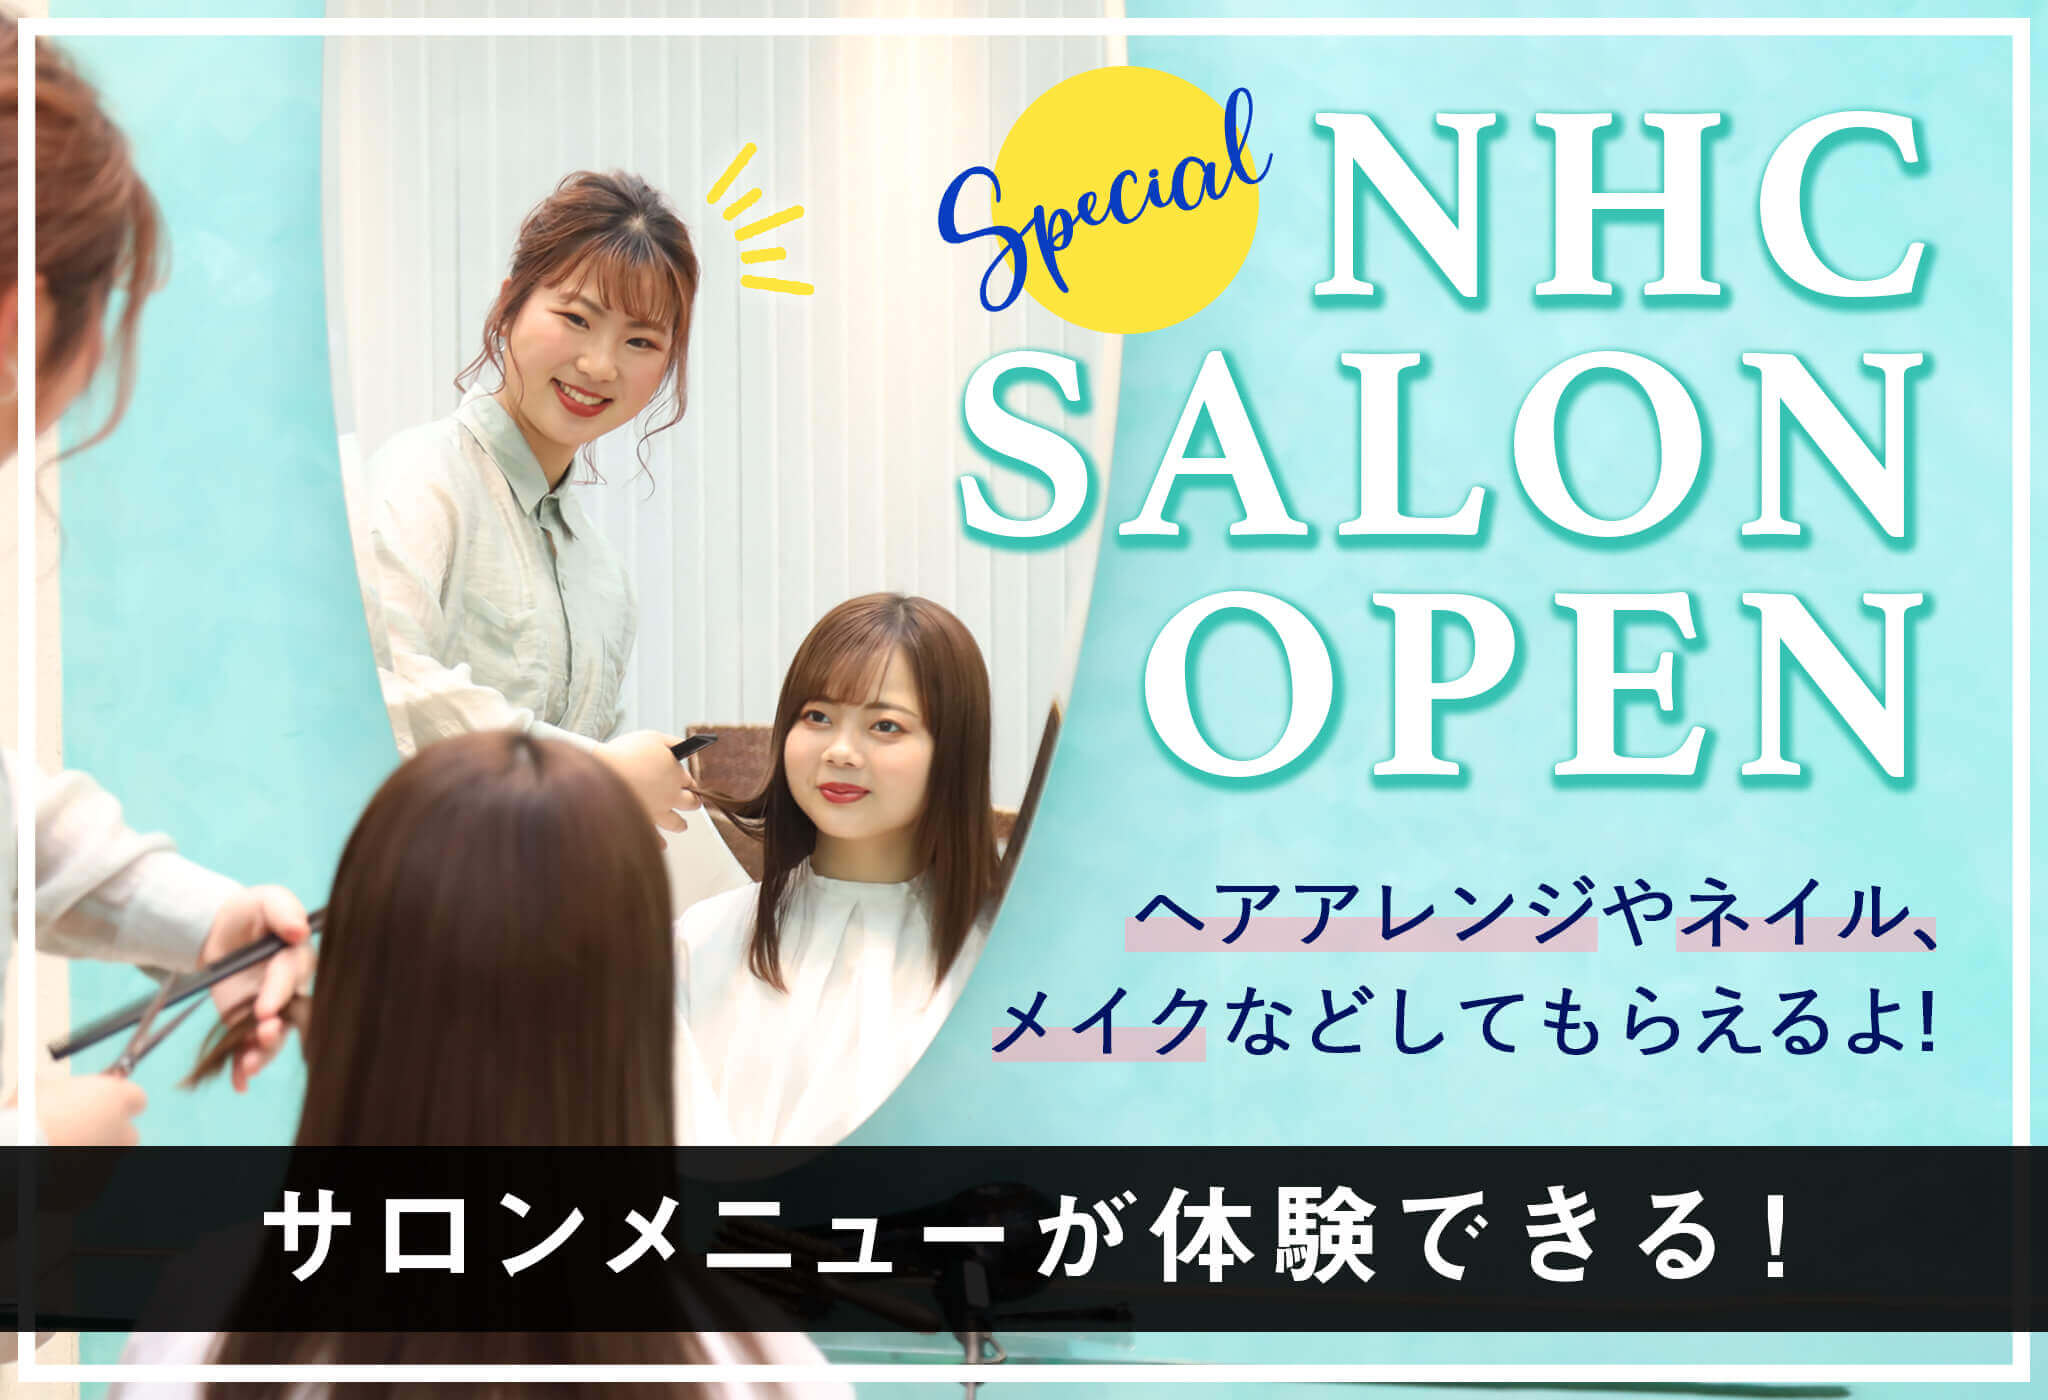 NHC SALON OPEN